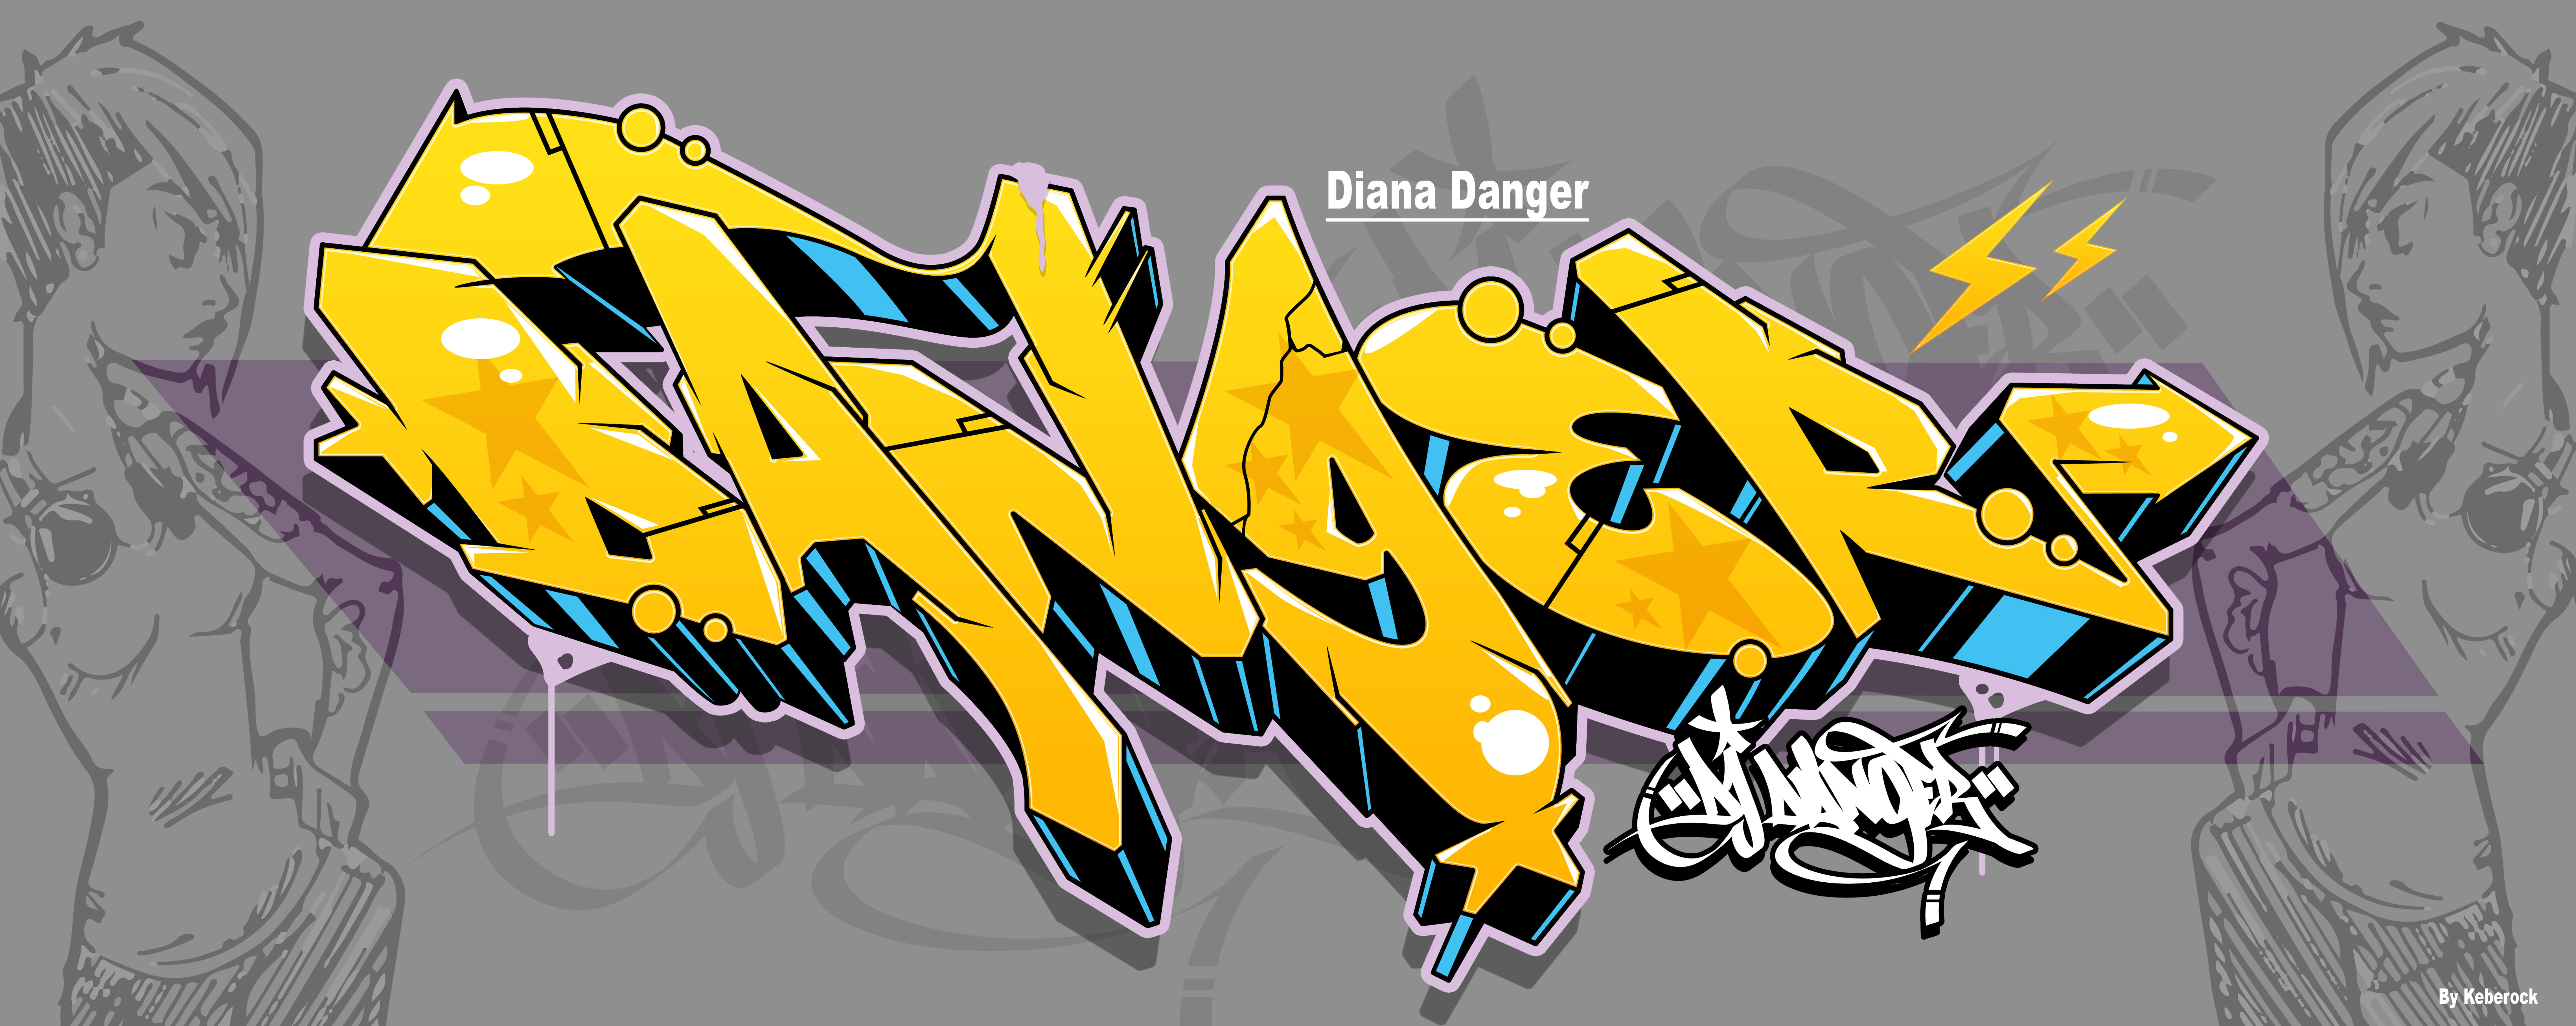 Creat best name graffiti logo for you by keberproduct